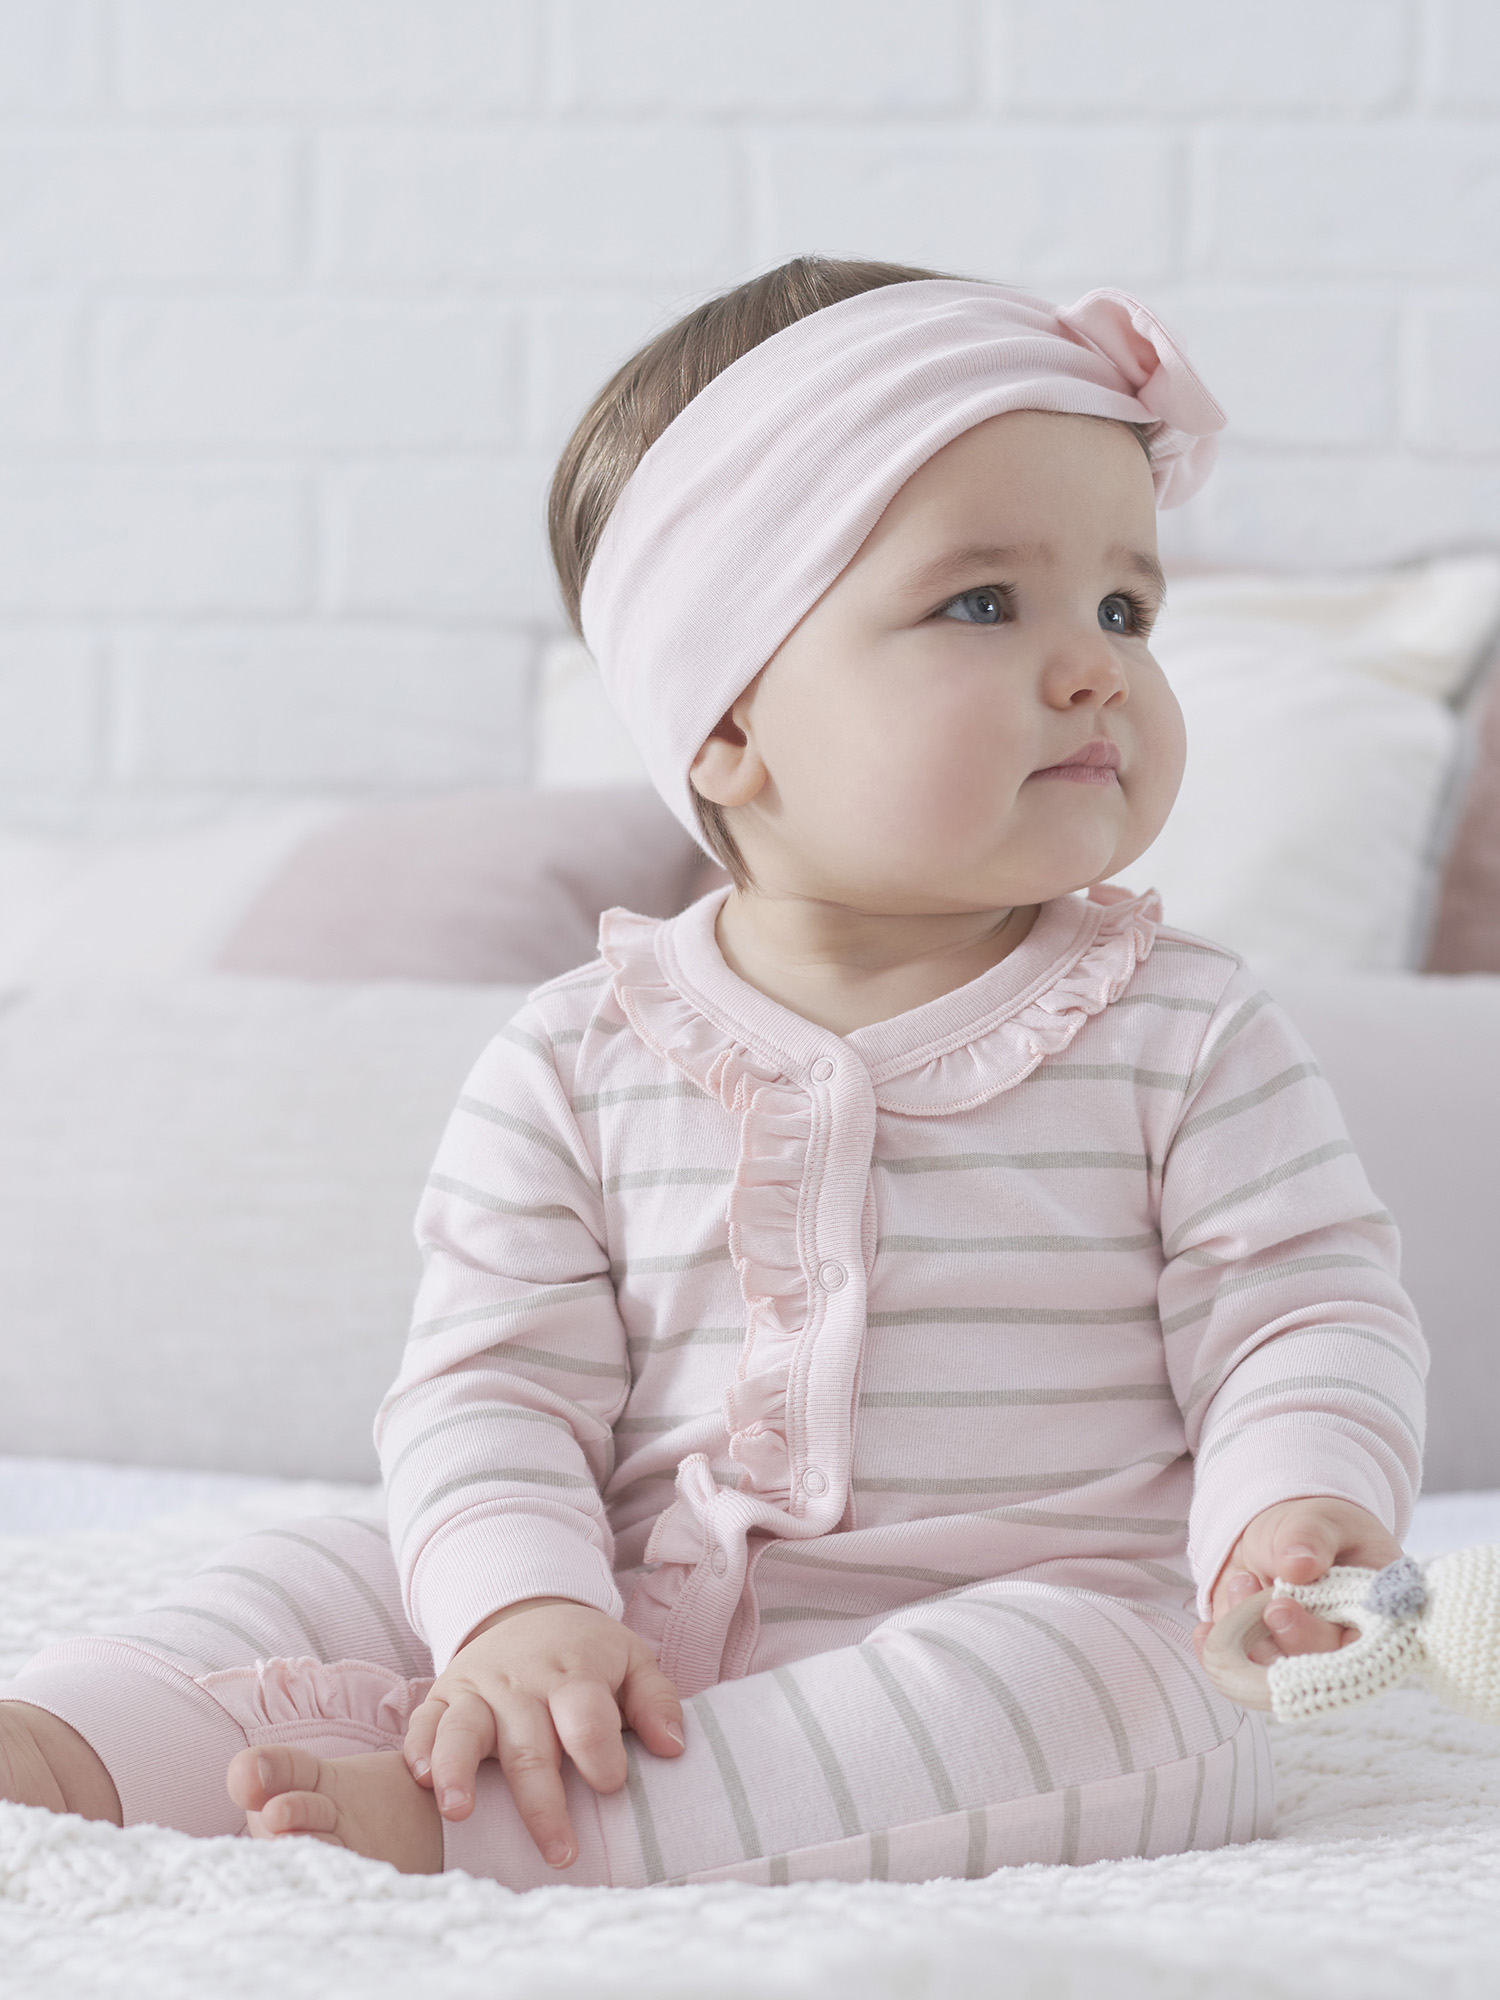 baby unique items gifts for expectant parents boho accessories autumn gifts newborn baby girl headband gifts for daughter best selling